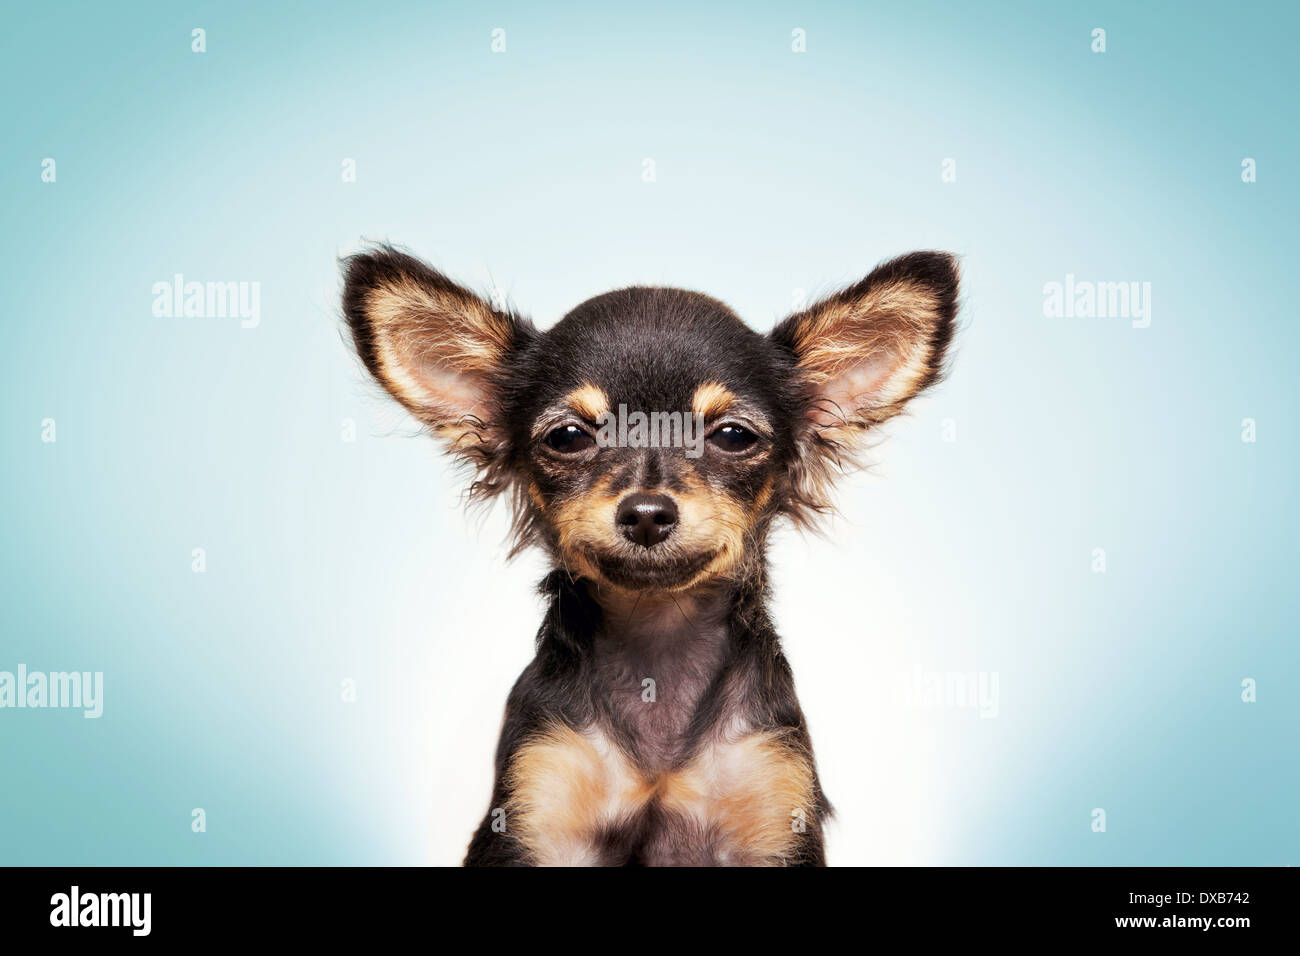 Chihuahua dog smiling, regardant la caméra. Photo Stock